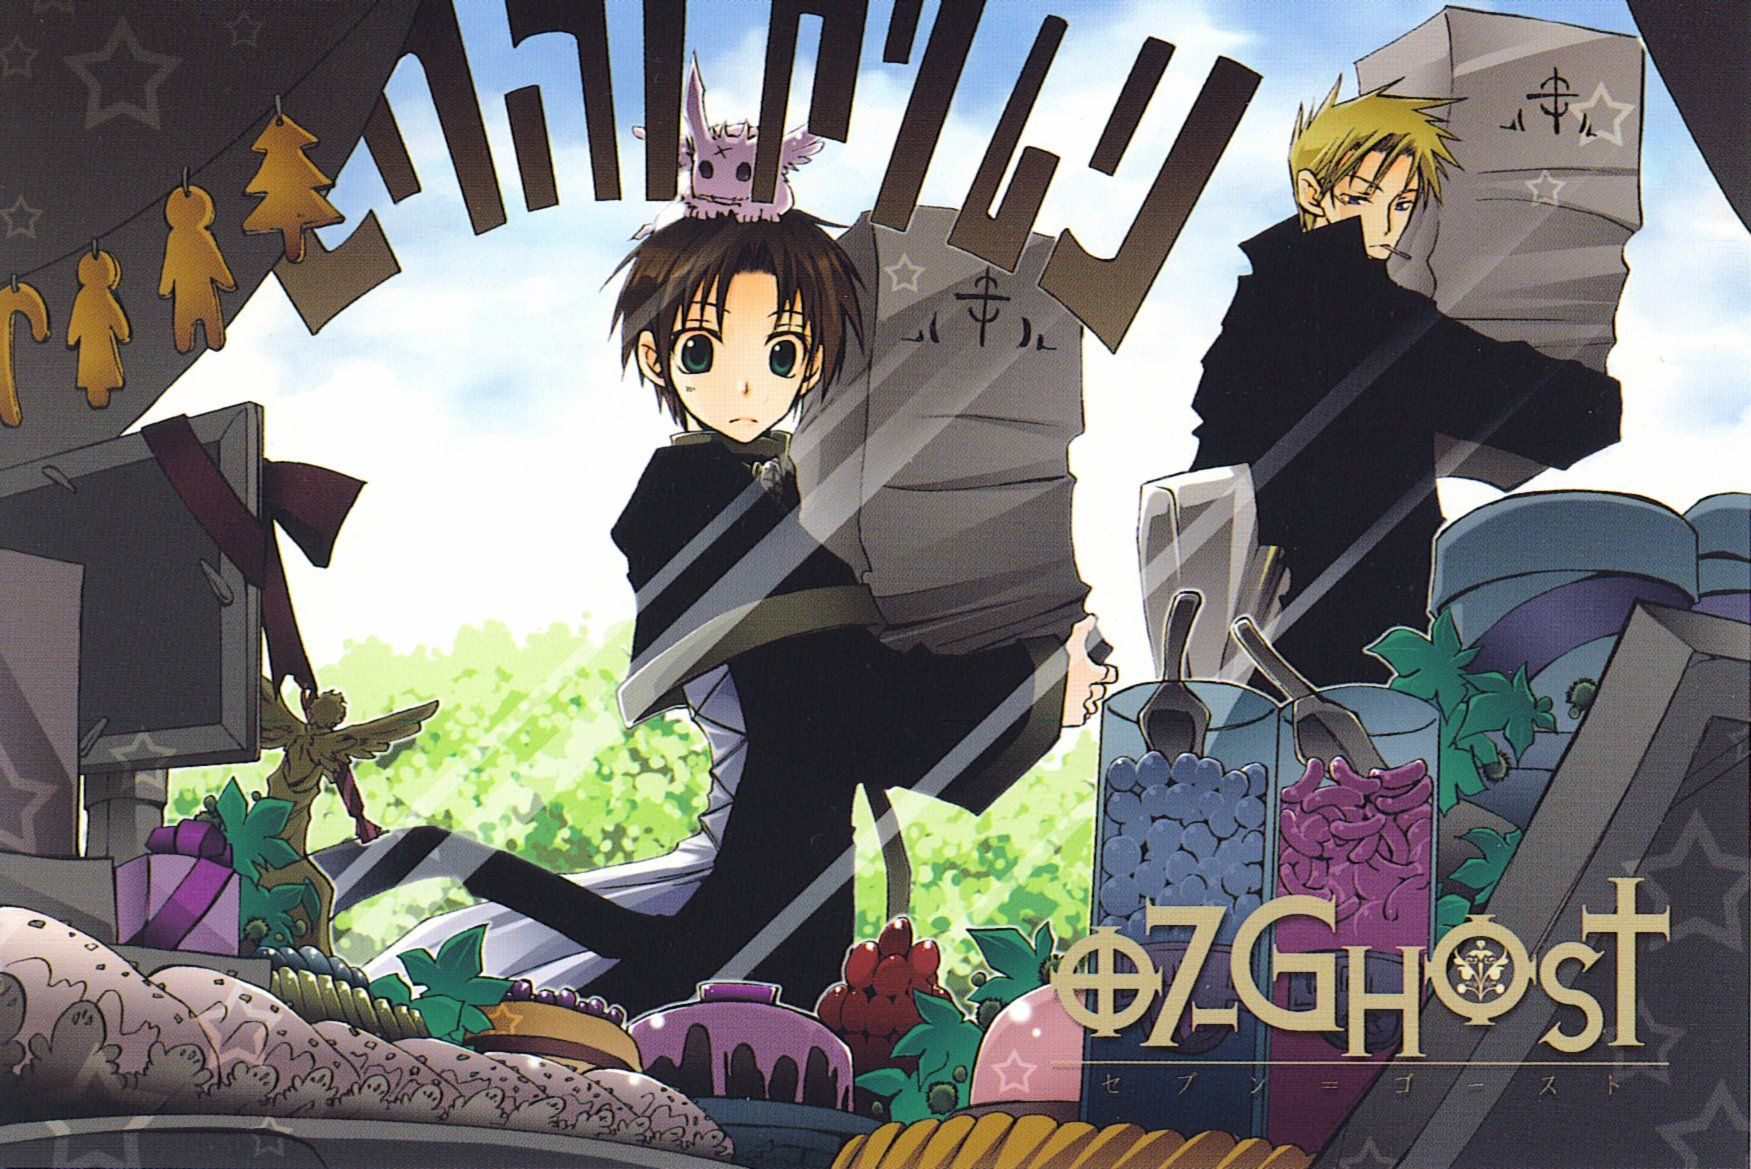 Tags 07 Ghost Teito Klein Frau 07 Ghost Burupya Official